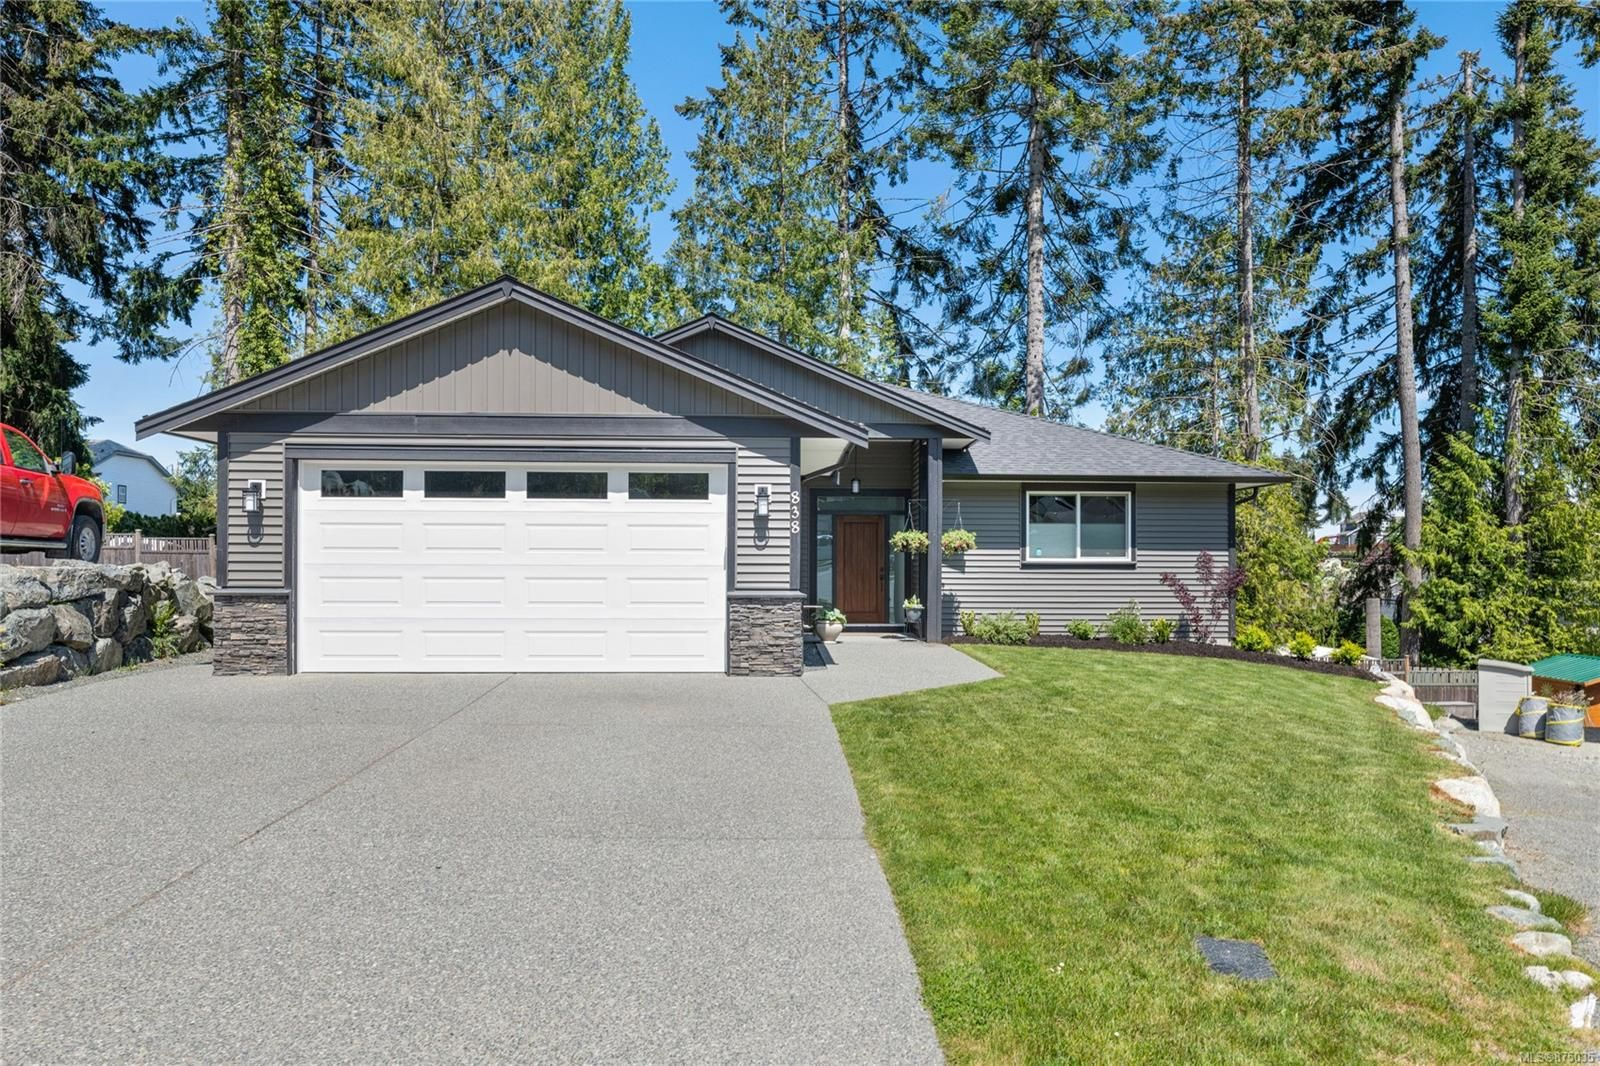 Main Photo: 838 Stirling Dr in : Du Ladysmith House for sale (Duncan)  : MLS®# 875035